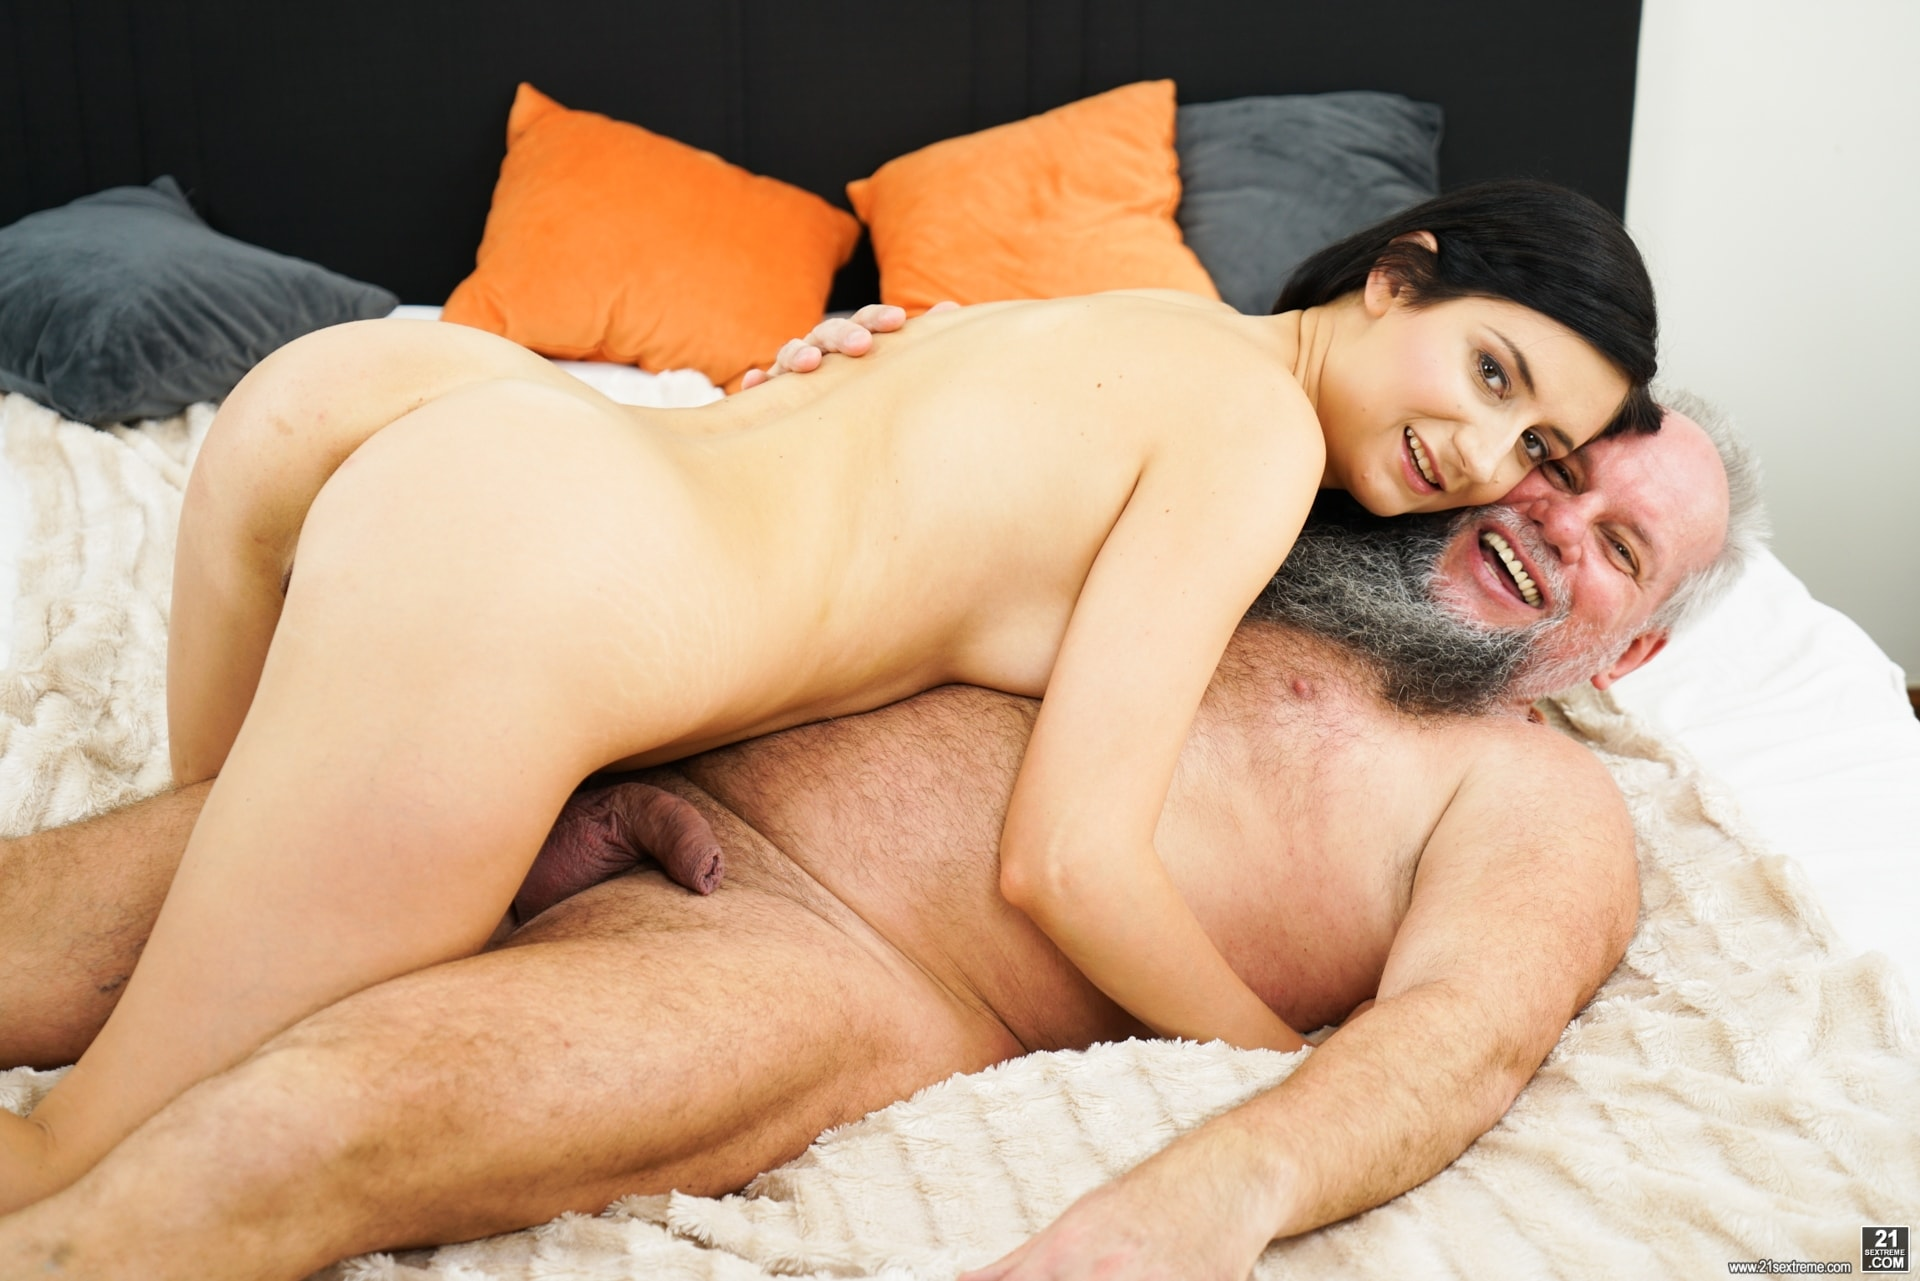 21Sextury 'Don't Let It End' starring Melody Mae (Photo 26)